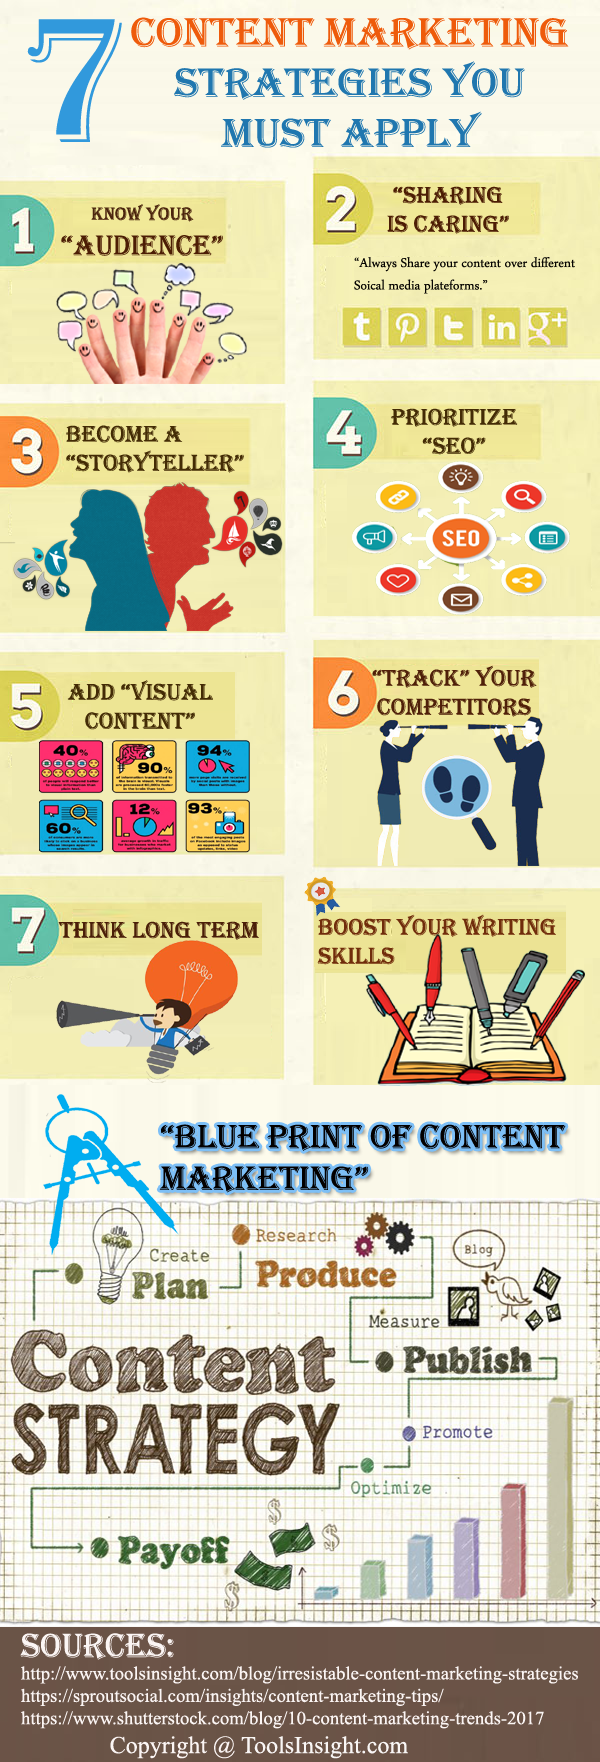 7 content marketing